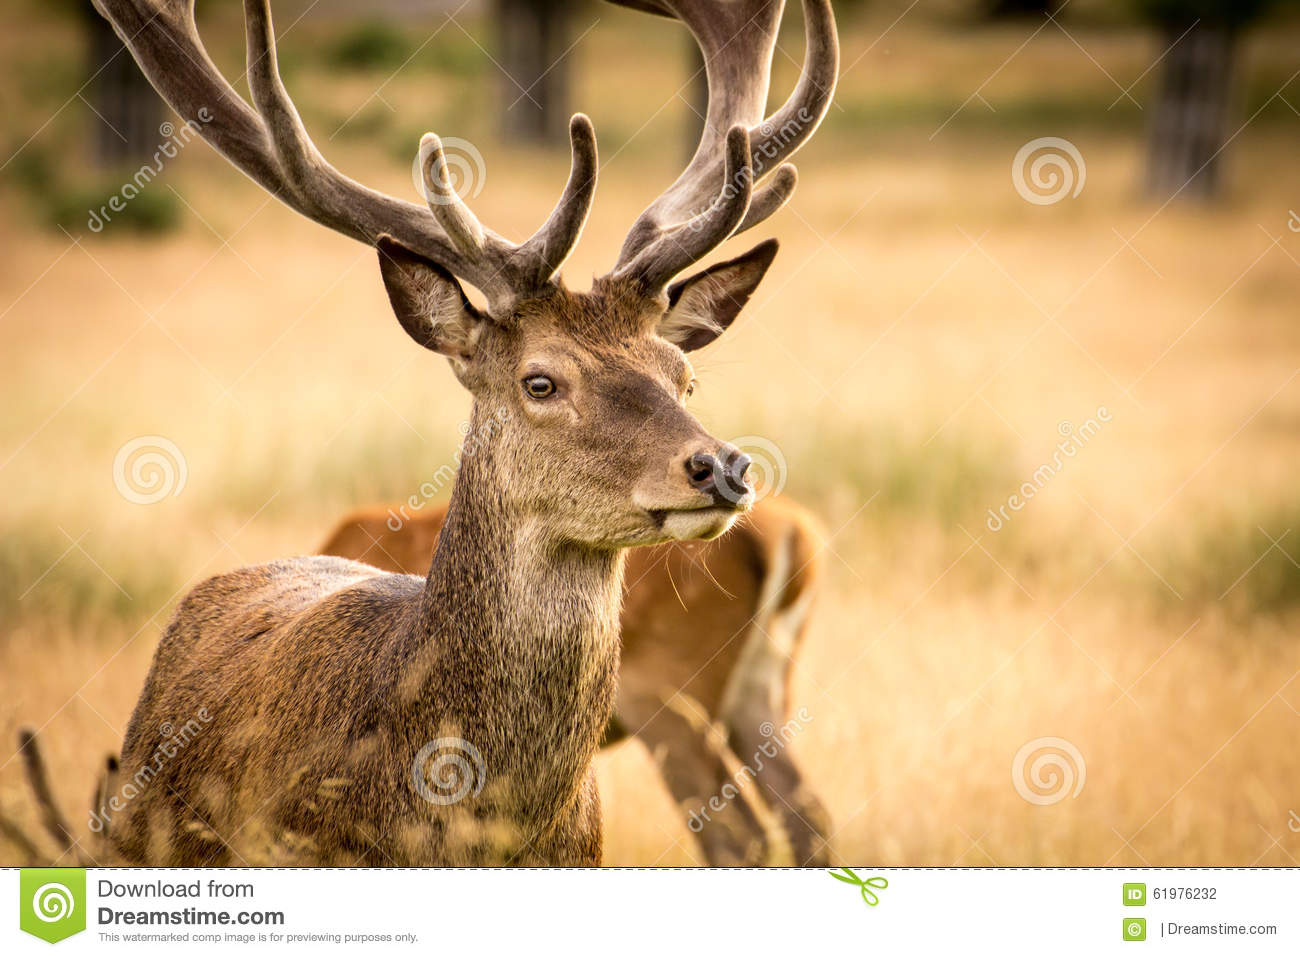 deer trail divorced singles Welcome to the different site for dating if you are an adventurous person and you are looking for a date, soul mate or activity partner this is the right place.